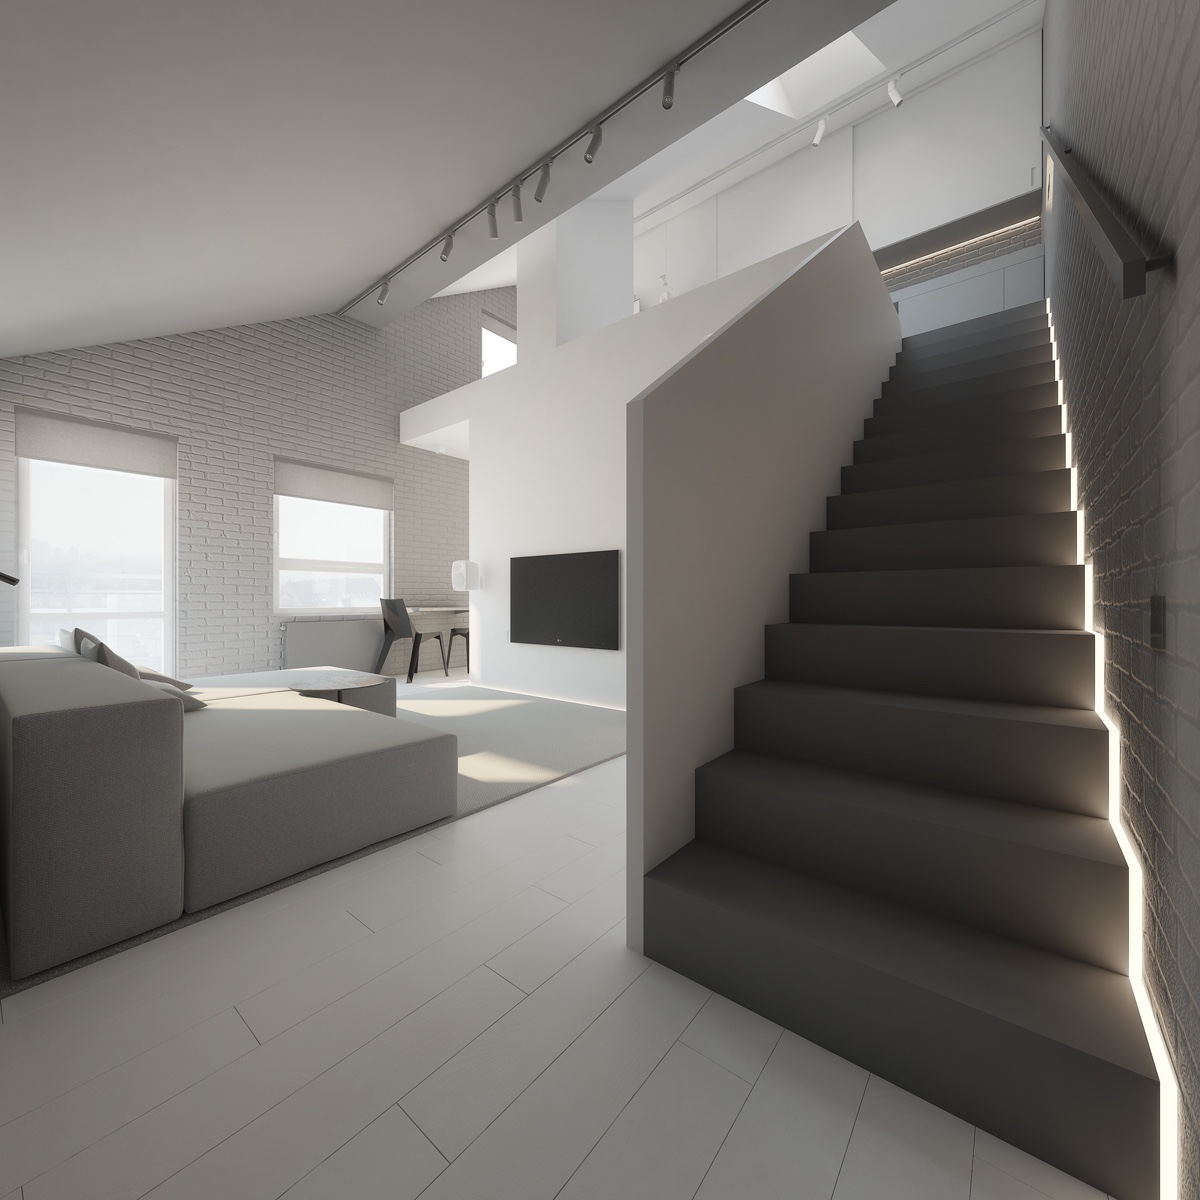 3 Light White And Minimalist Homes Inspiring Clarity Of